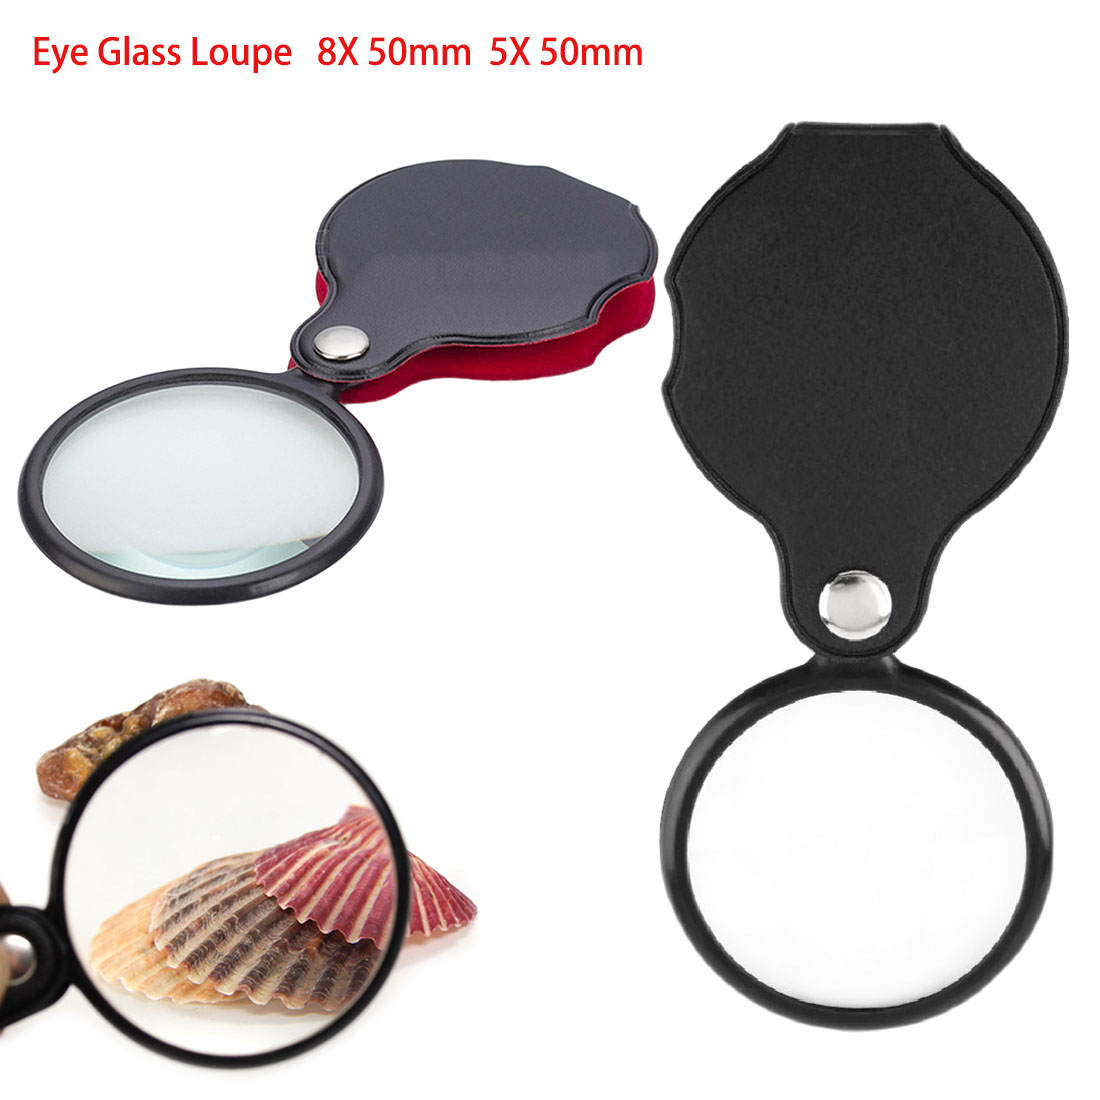 Mini Pocket 8X 50mm 5X 50mm Folding Jewelry Magnifier Magnifying Eye Glass Loupe Lens